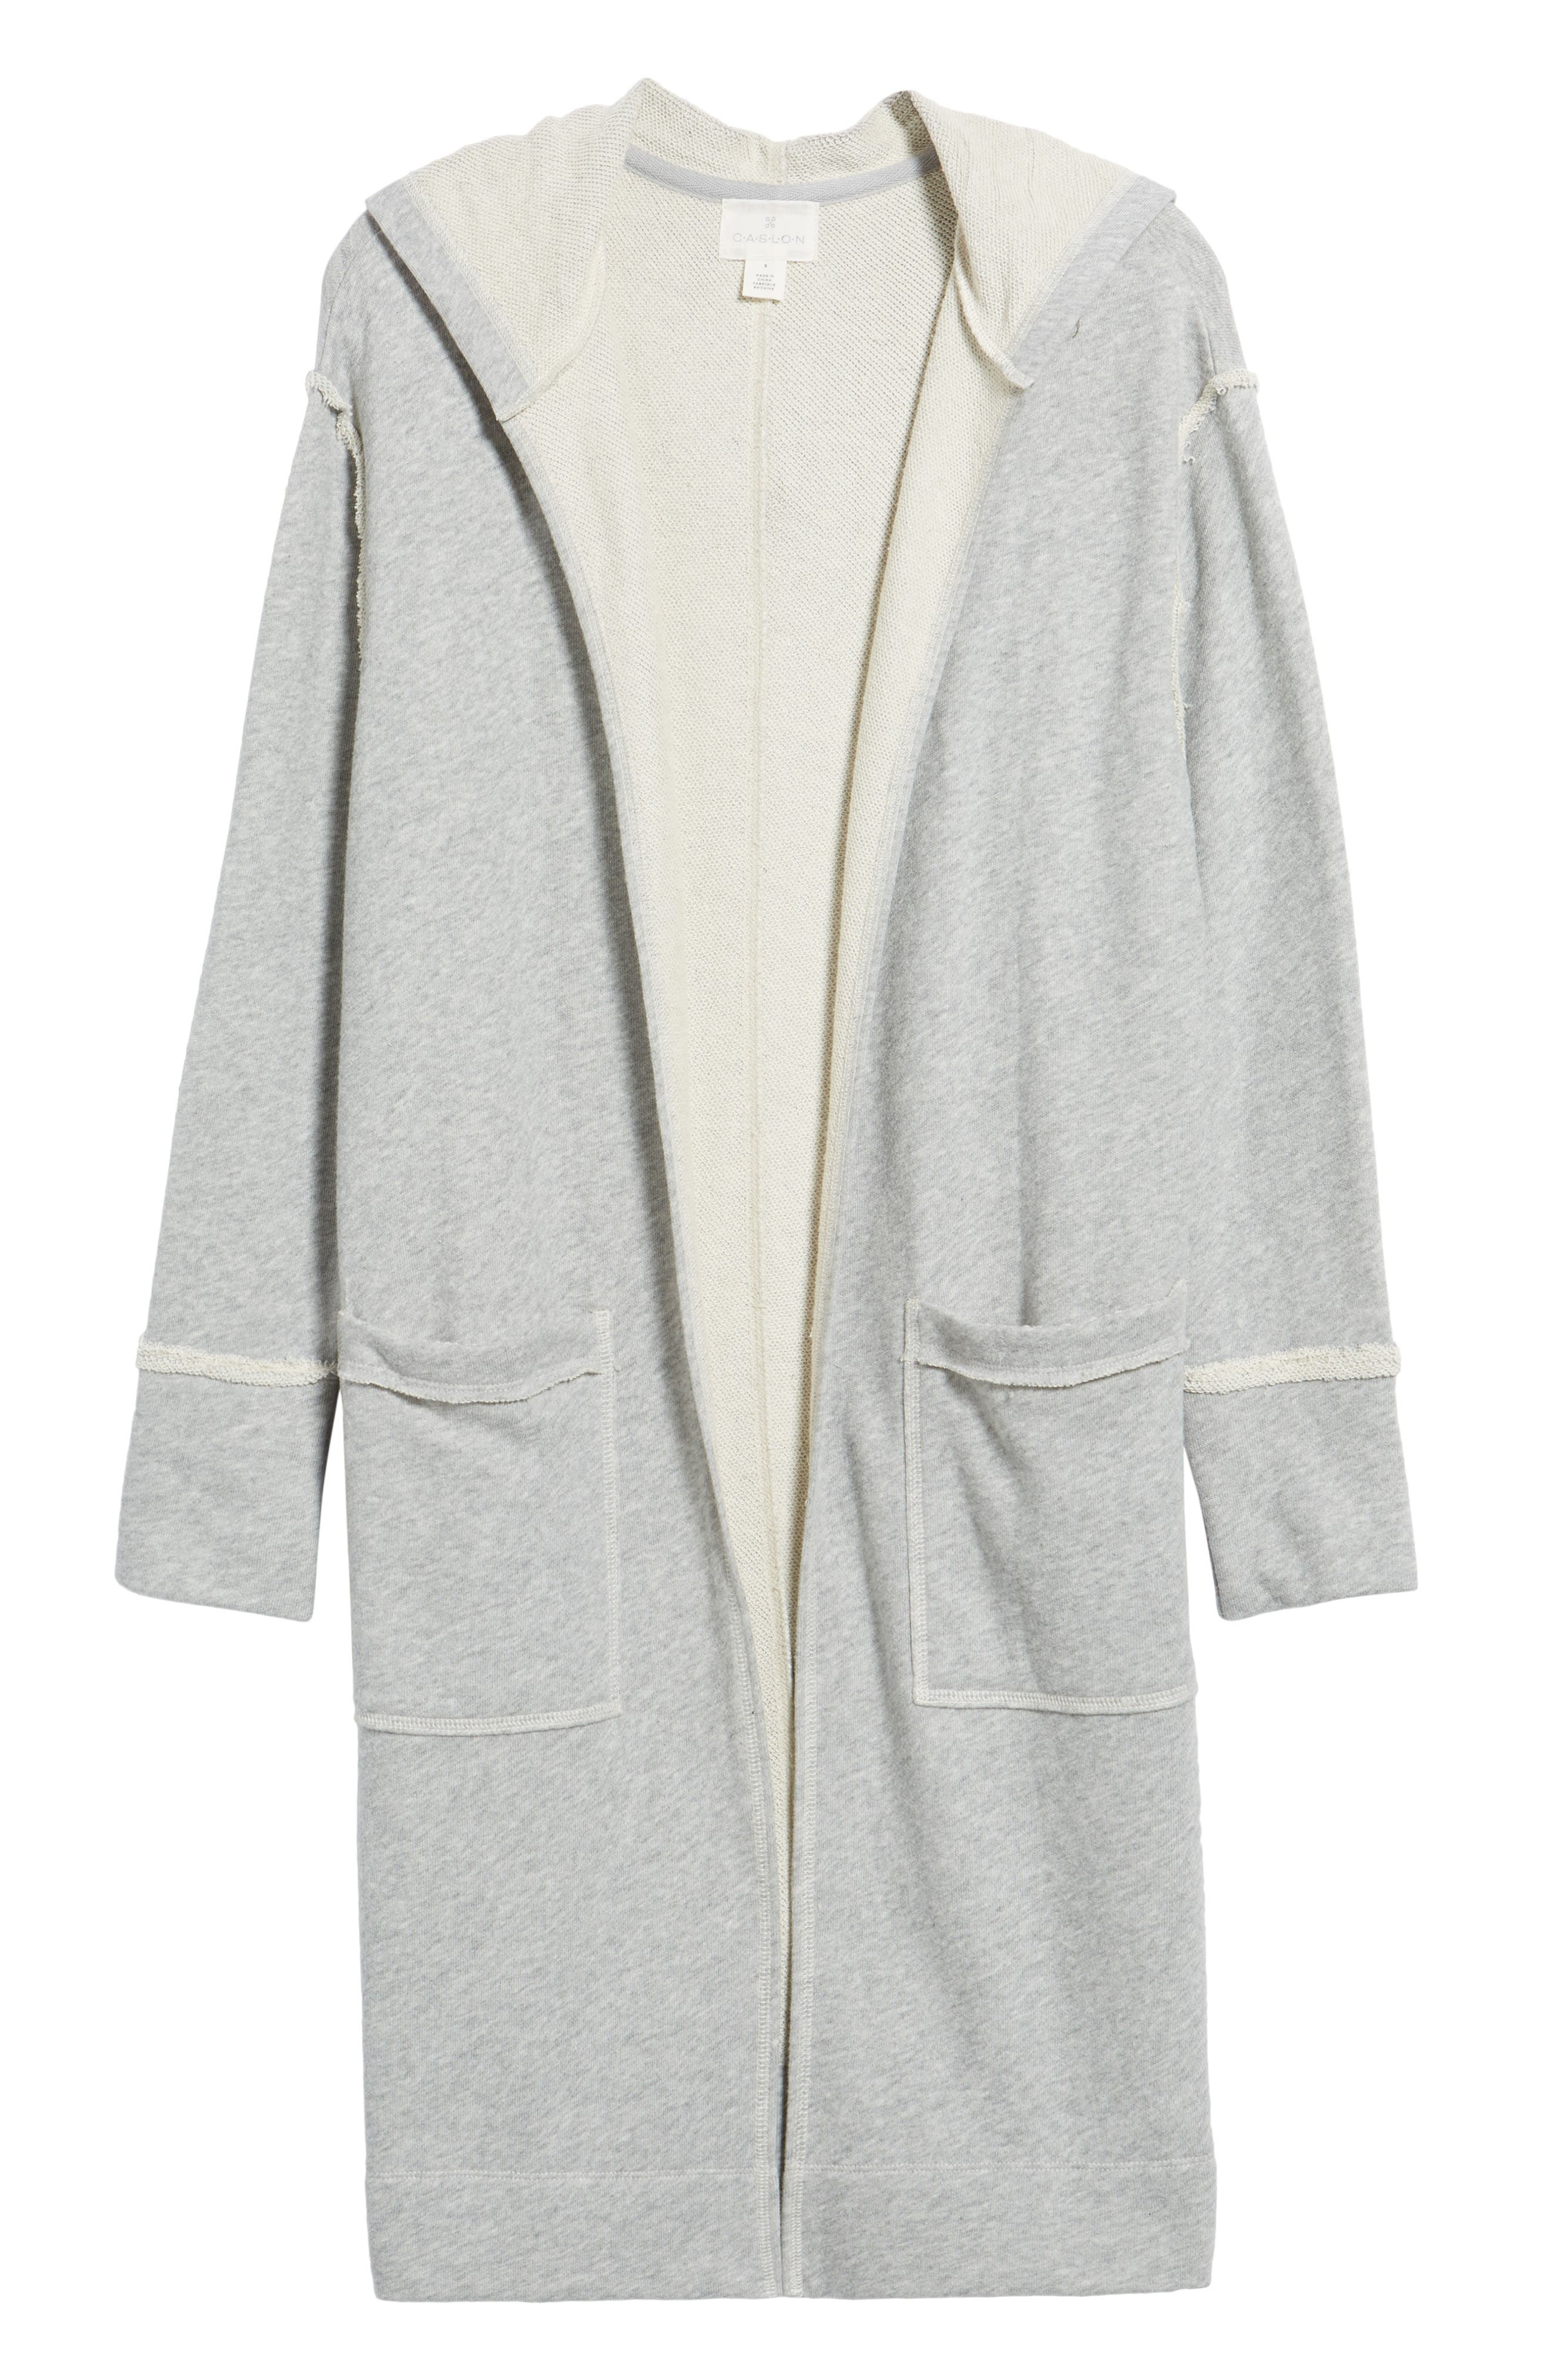 Hooded Long Cardigan,                             Alternate thumbnail 6, color,                             Grey Heather